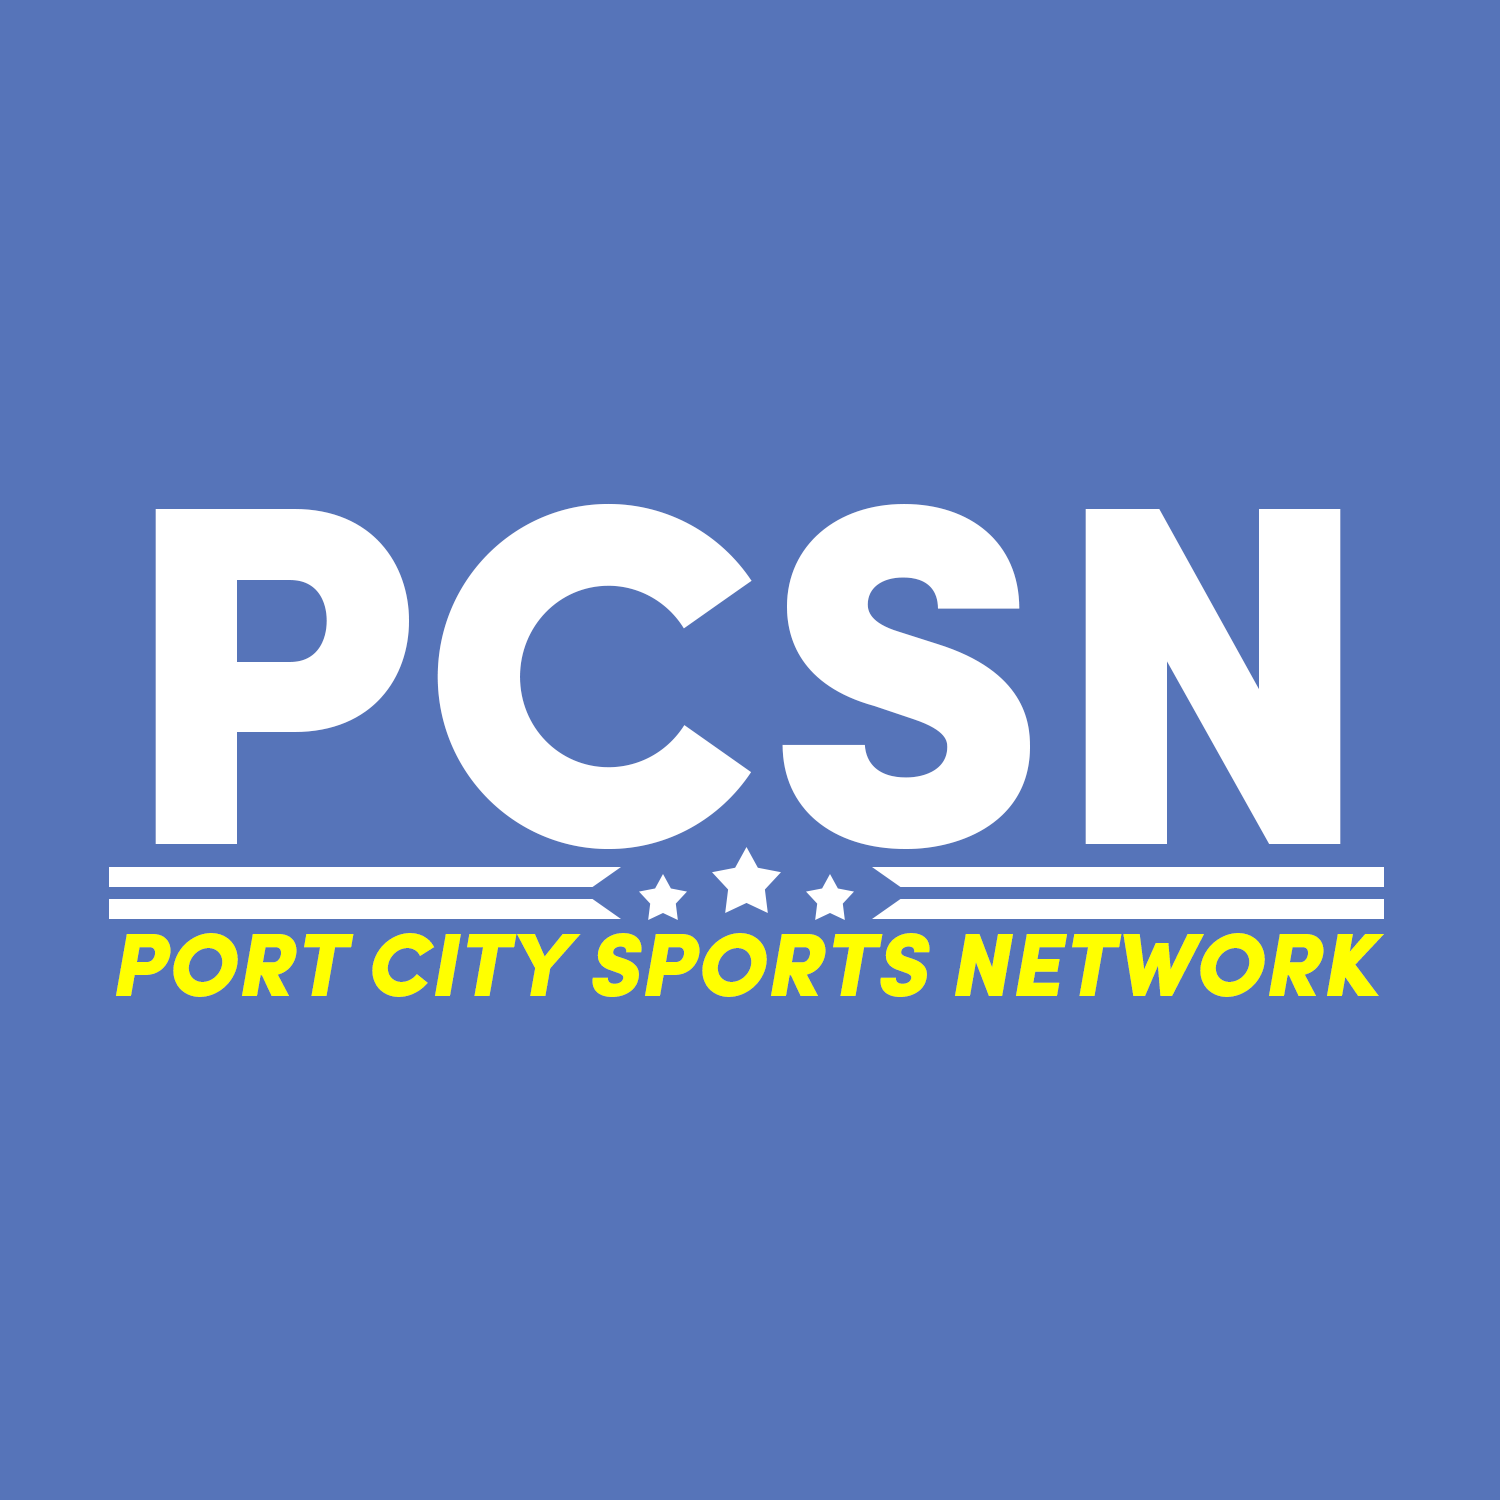 Port City Sports Network